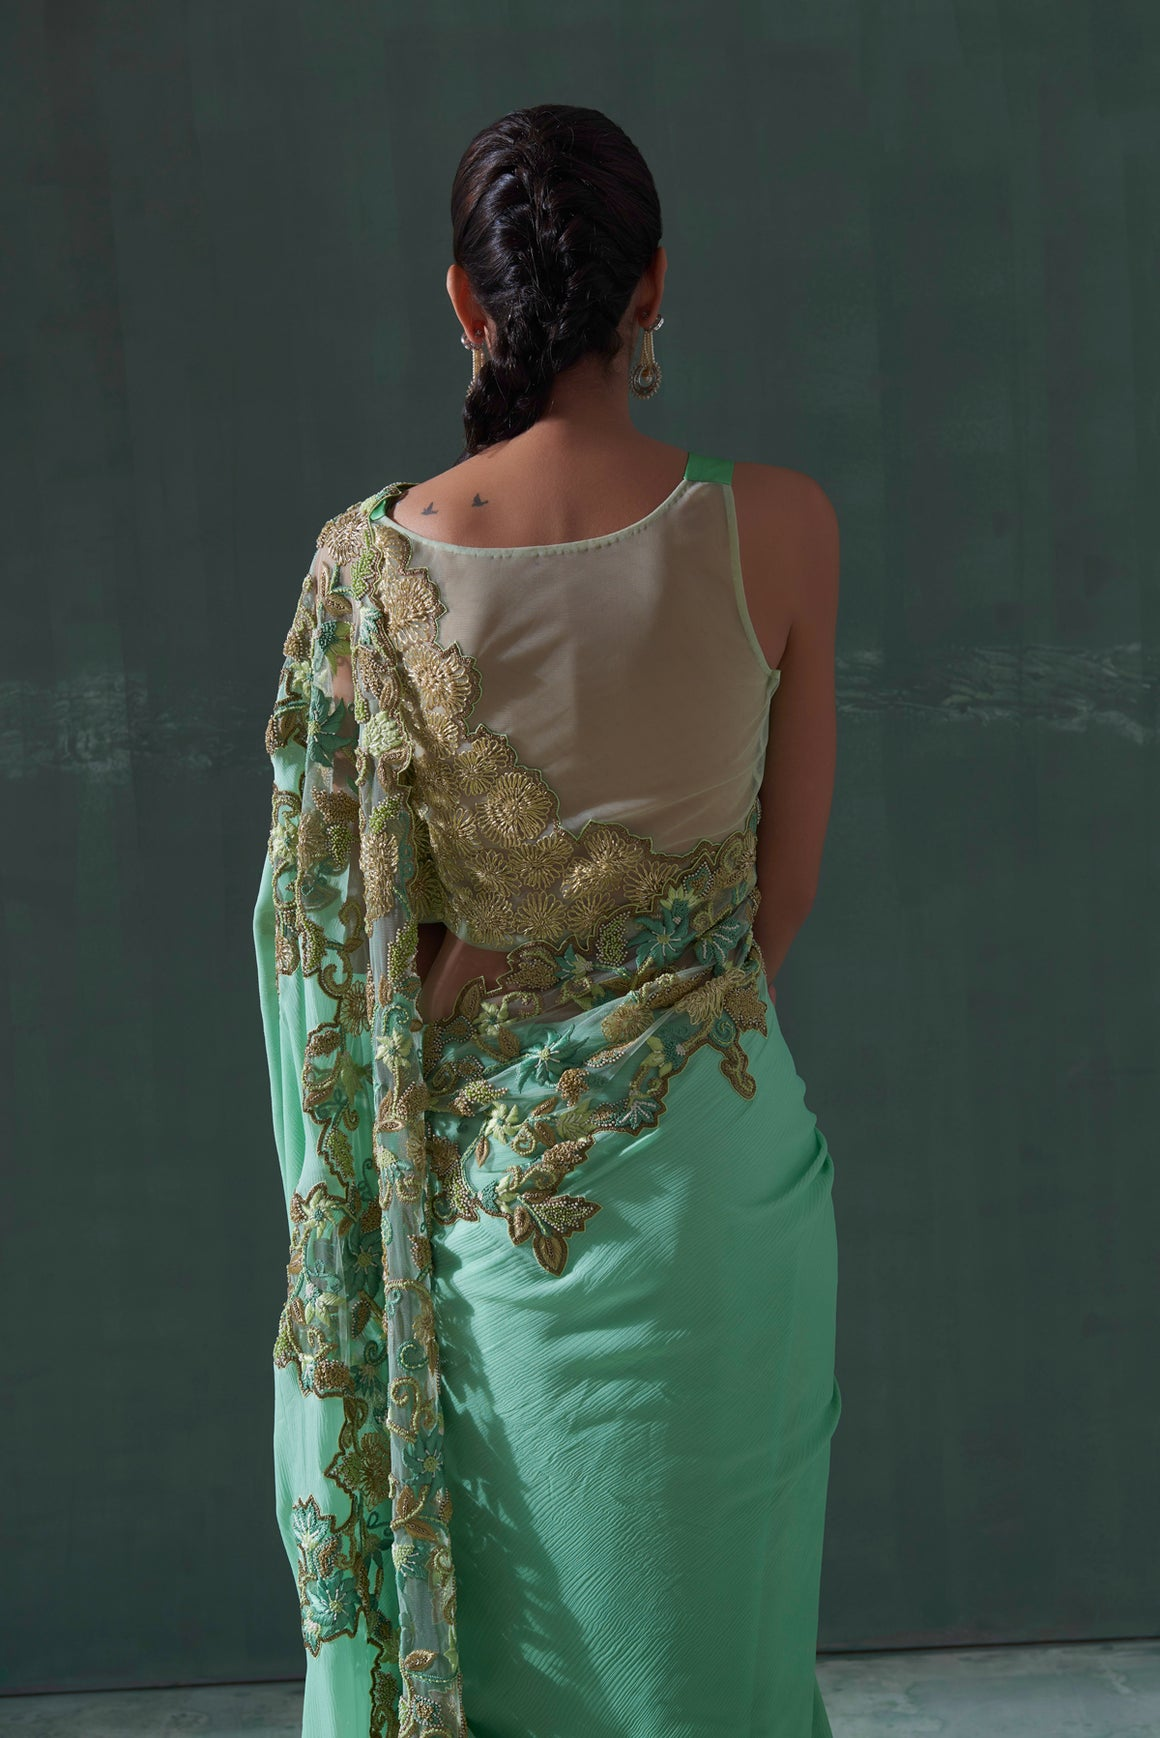 The Seraphic - Clothcrafte, Saree